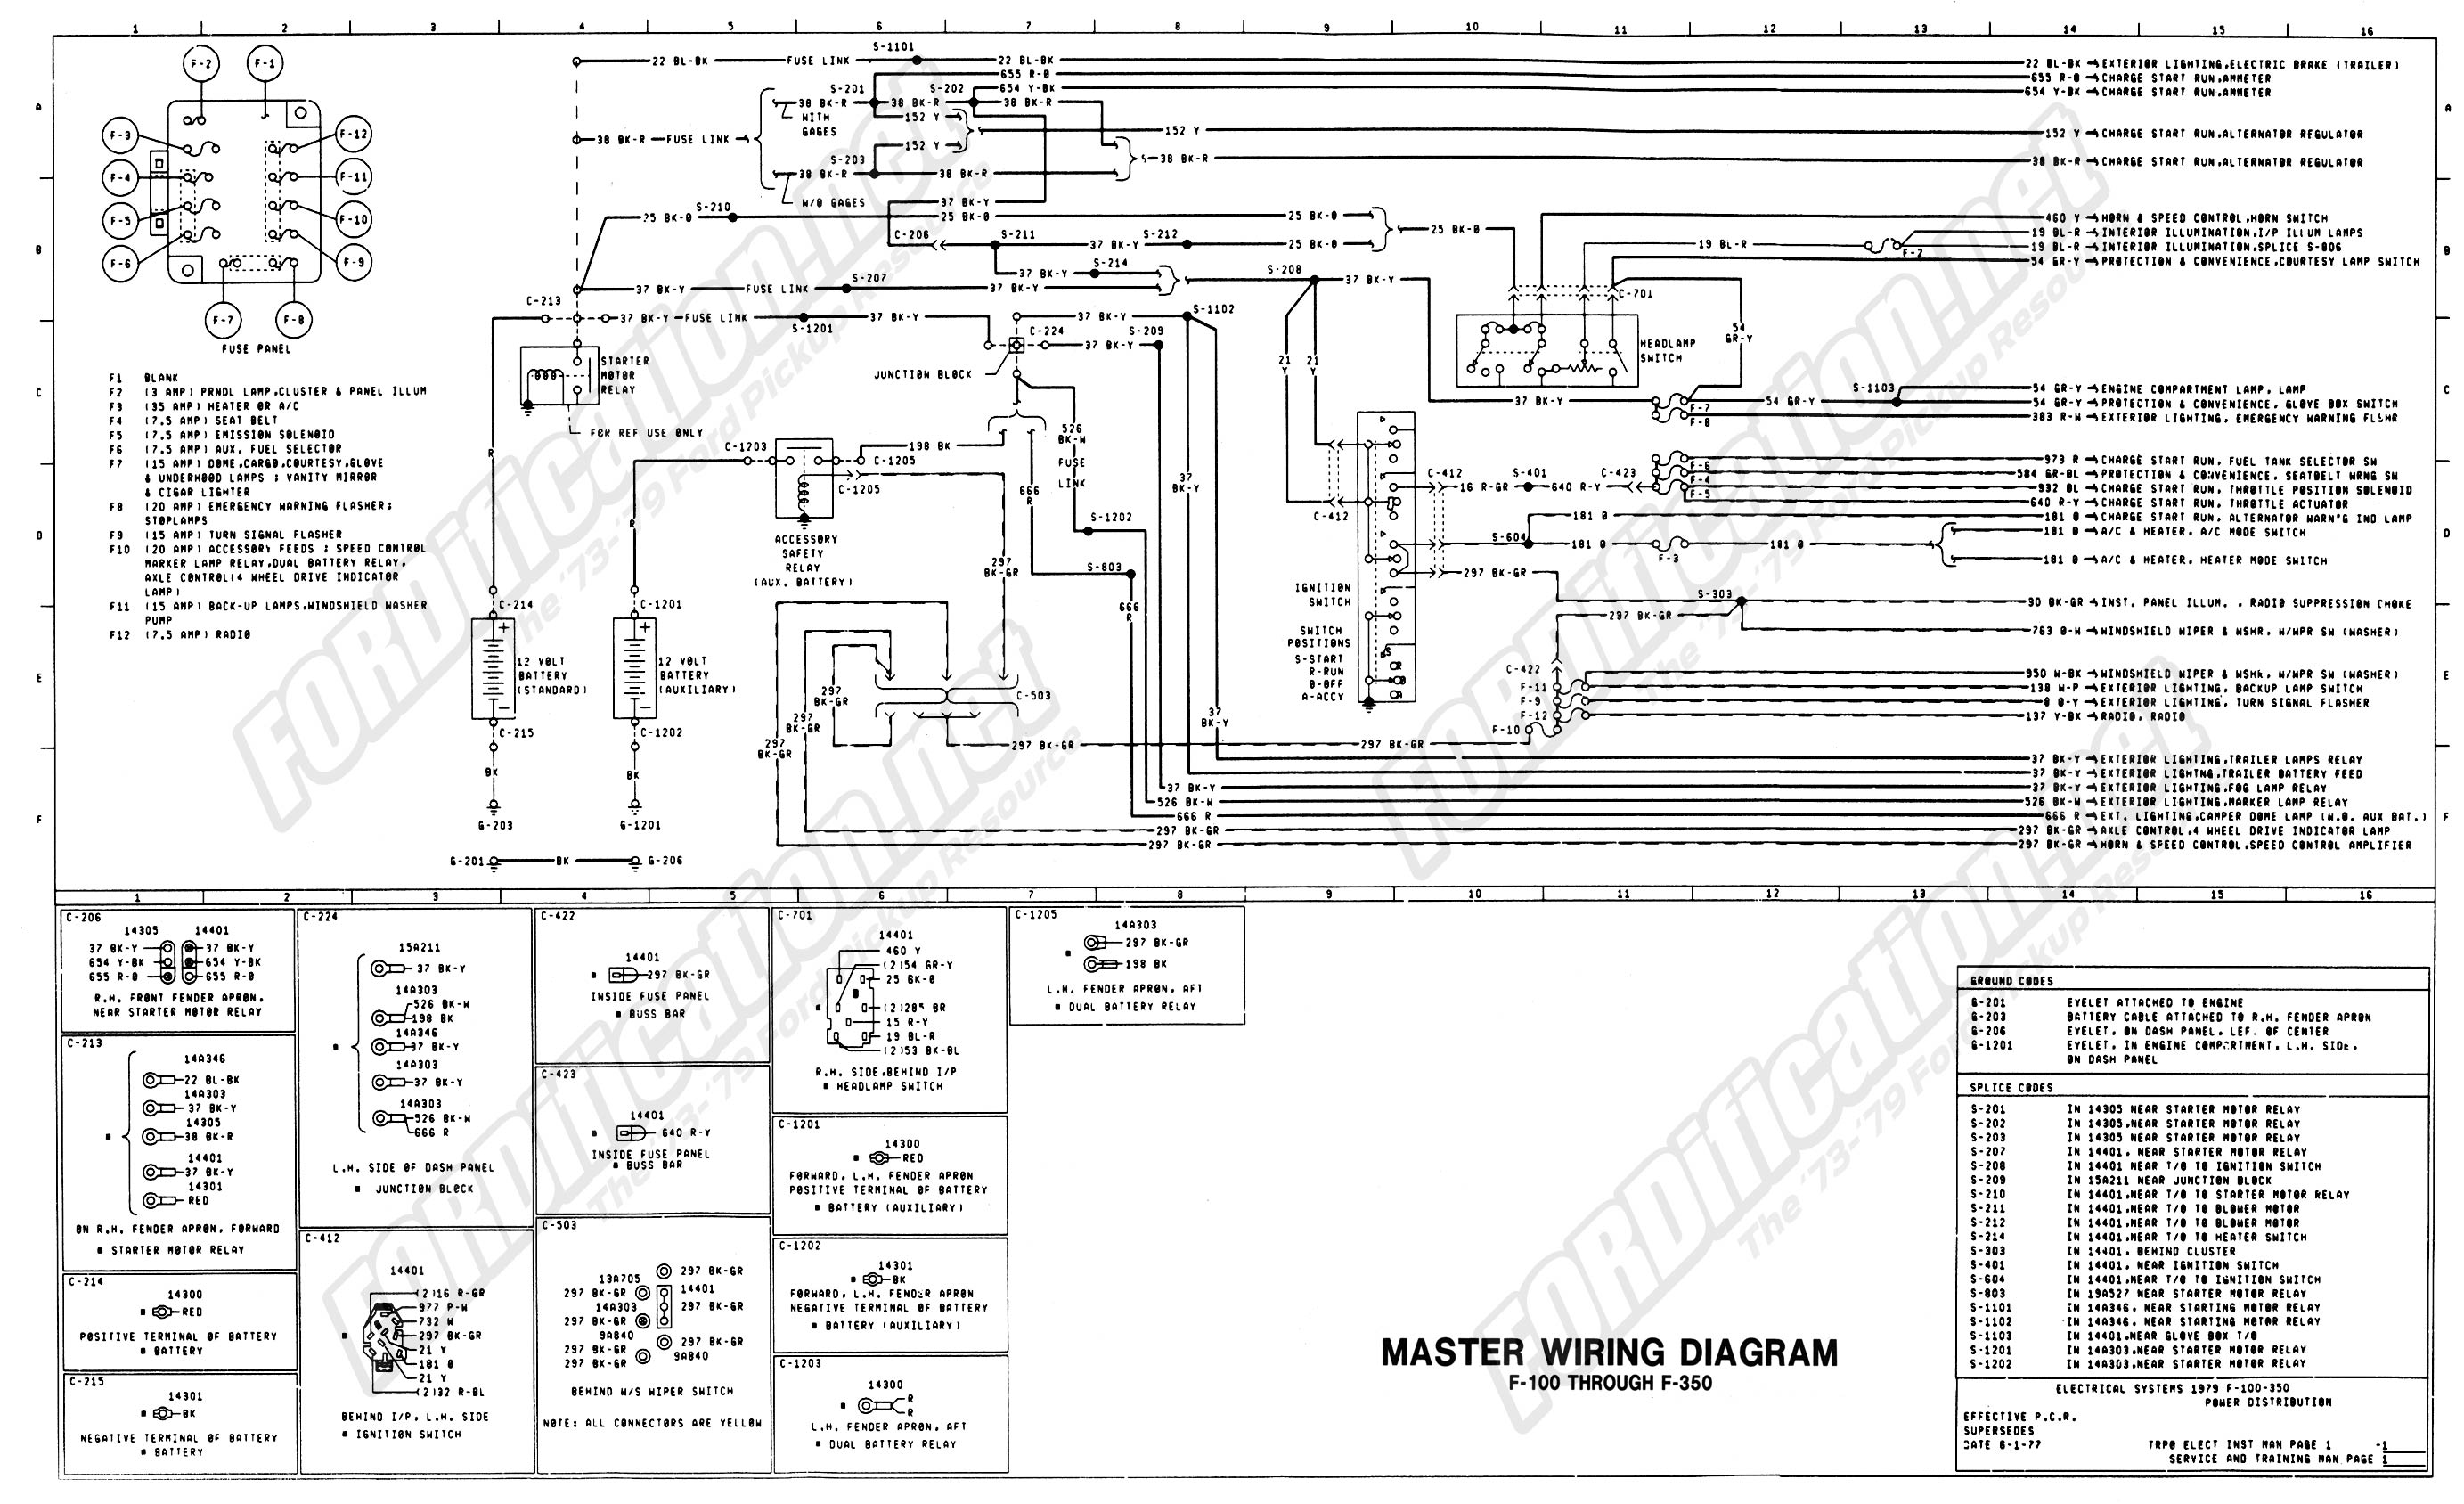 wiring_79master_1of9 1973 1979 ford truck wiring diagrams & schematics fordification net 1979 ford bronco fuse box diagram at bayanpartner.co